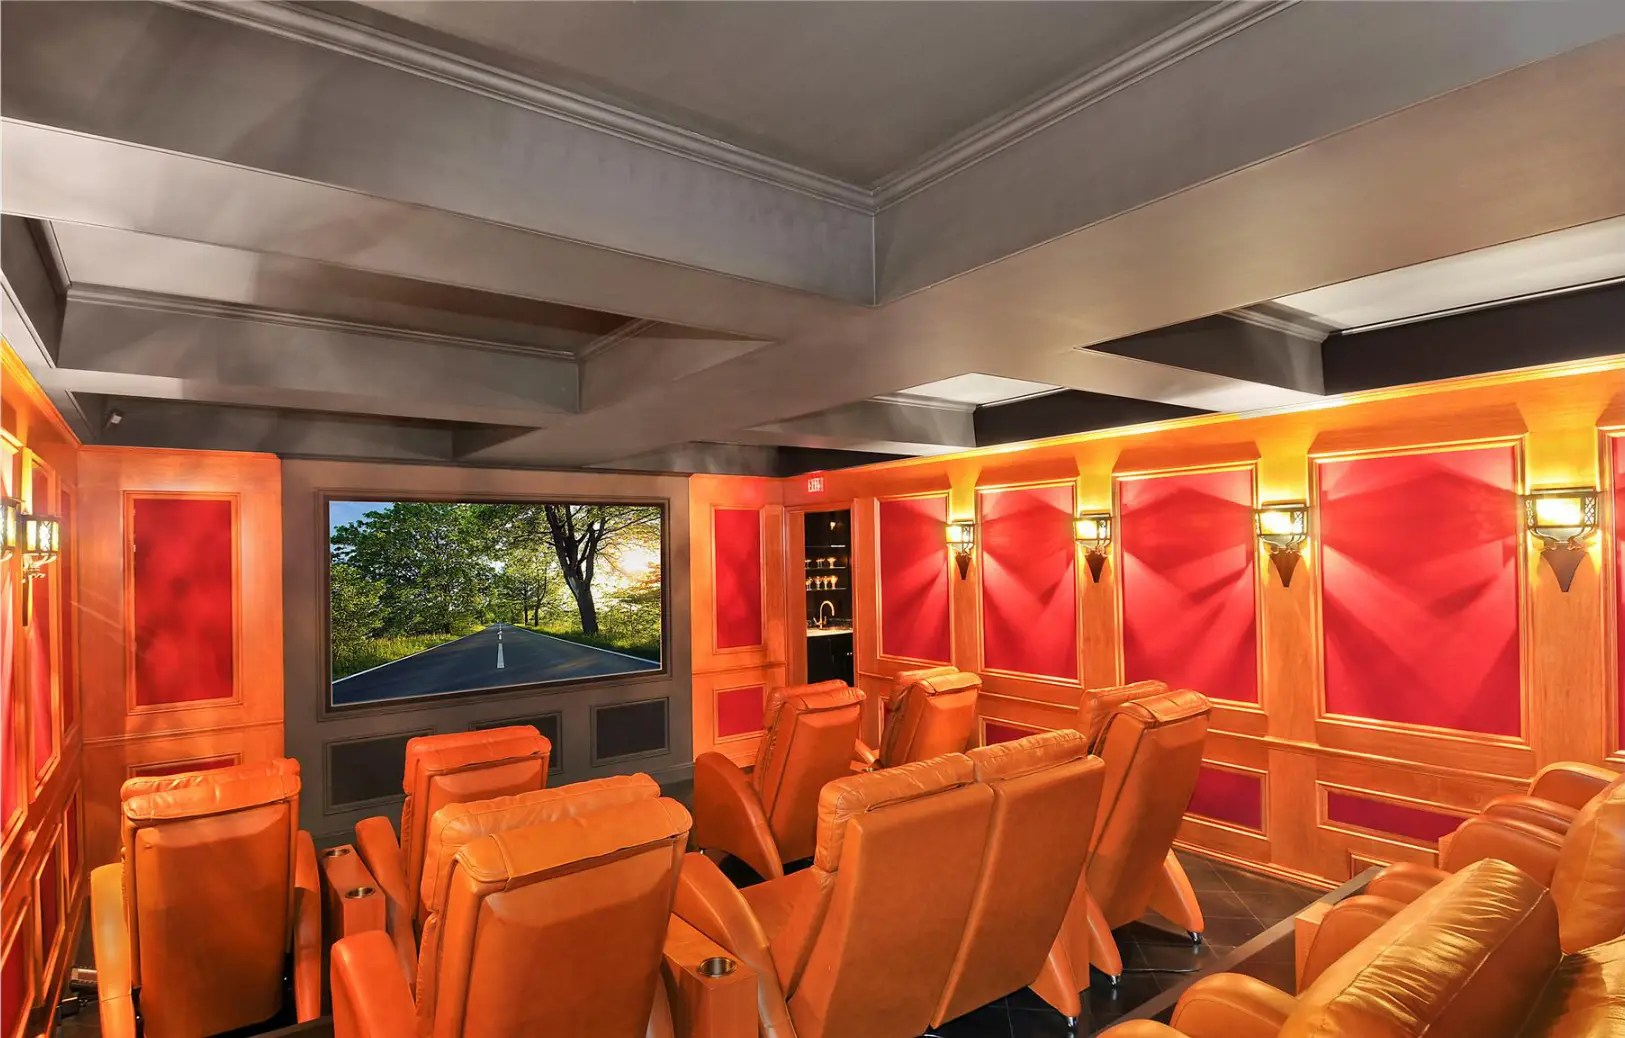 Check out the deluxe movie theater with multiple rows of plush lounge chairs.